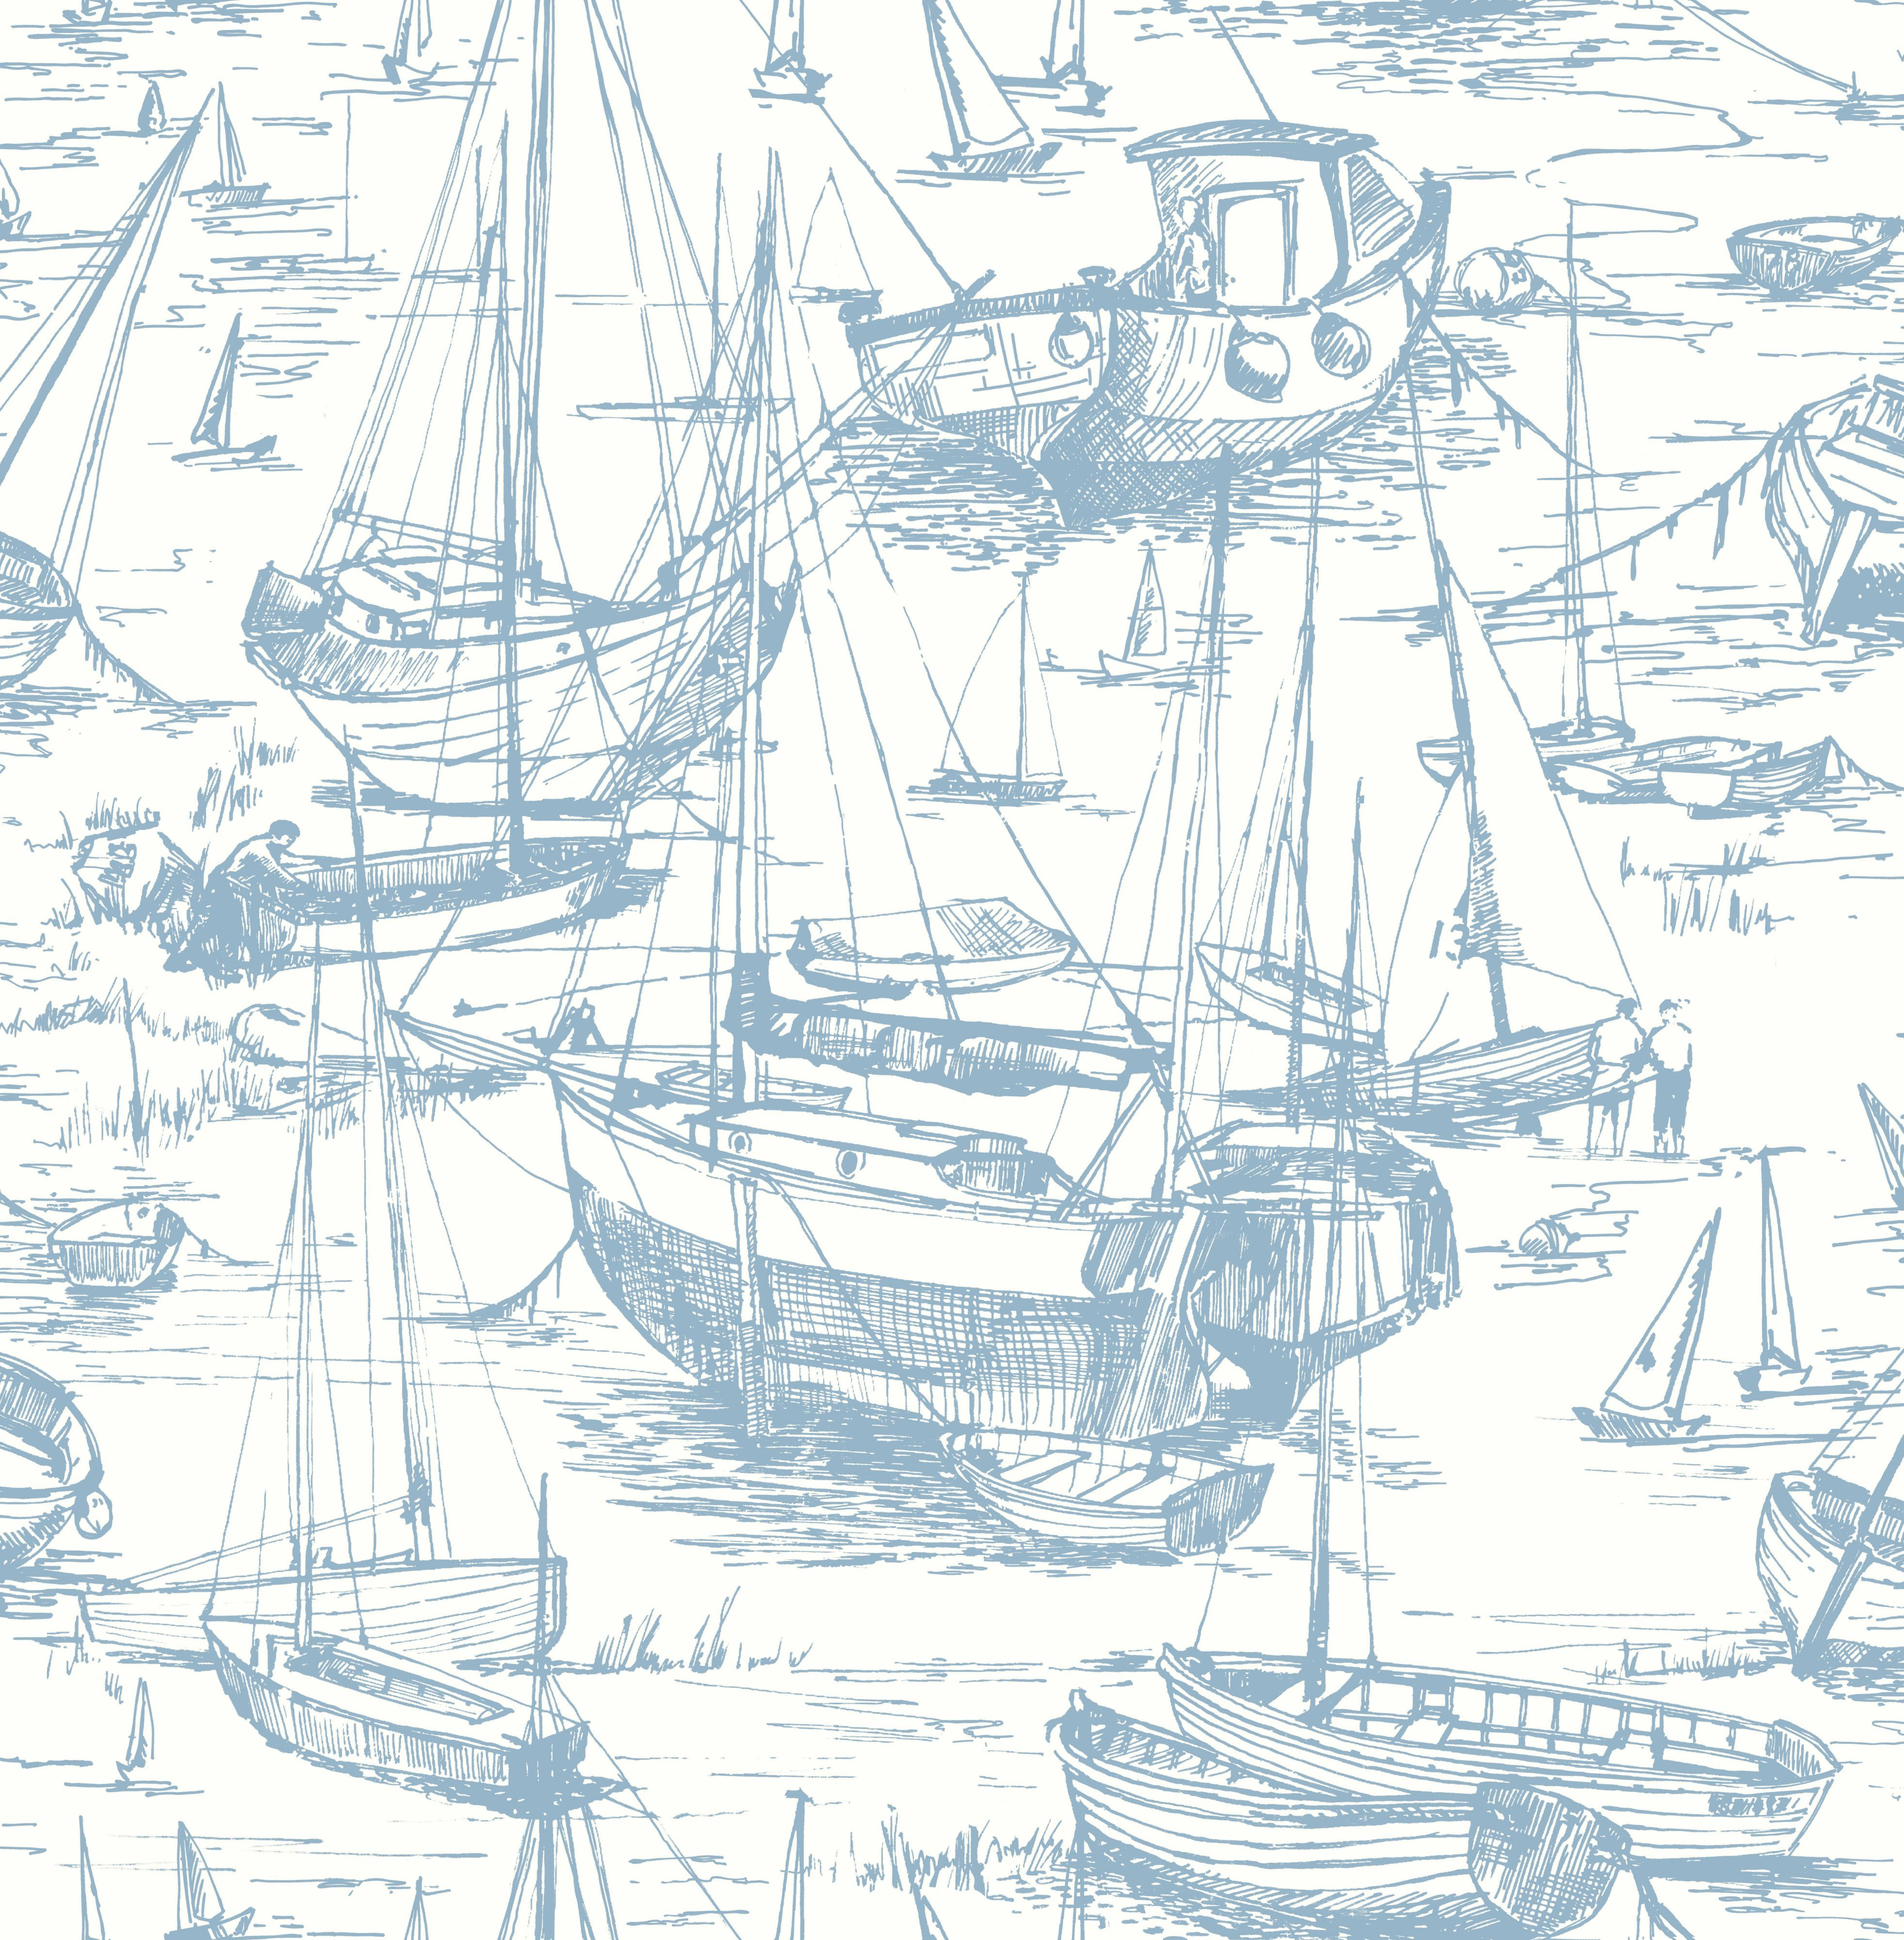 Home diy wallpaper illustration arthouse imagine fern plum motif vinyl - Colours Harbour Blue Illustration Wallpaper B Q For All Your Home And Garden Supplies And Advice On All The Latest Diy Trends